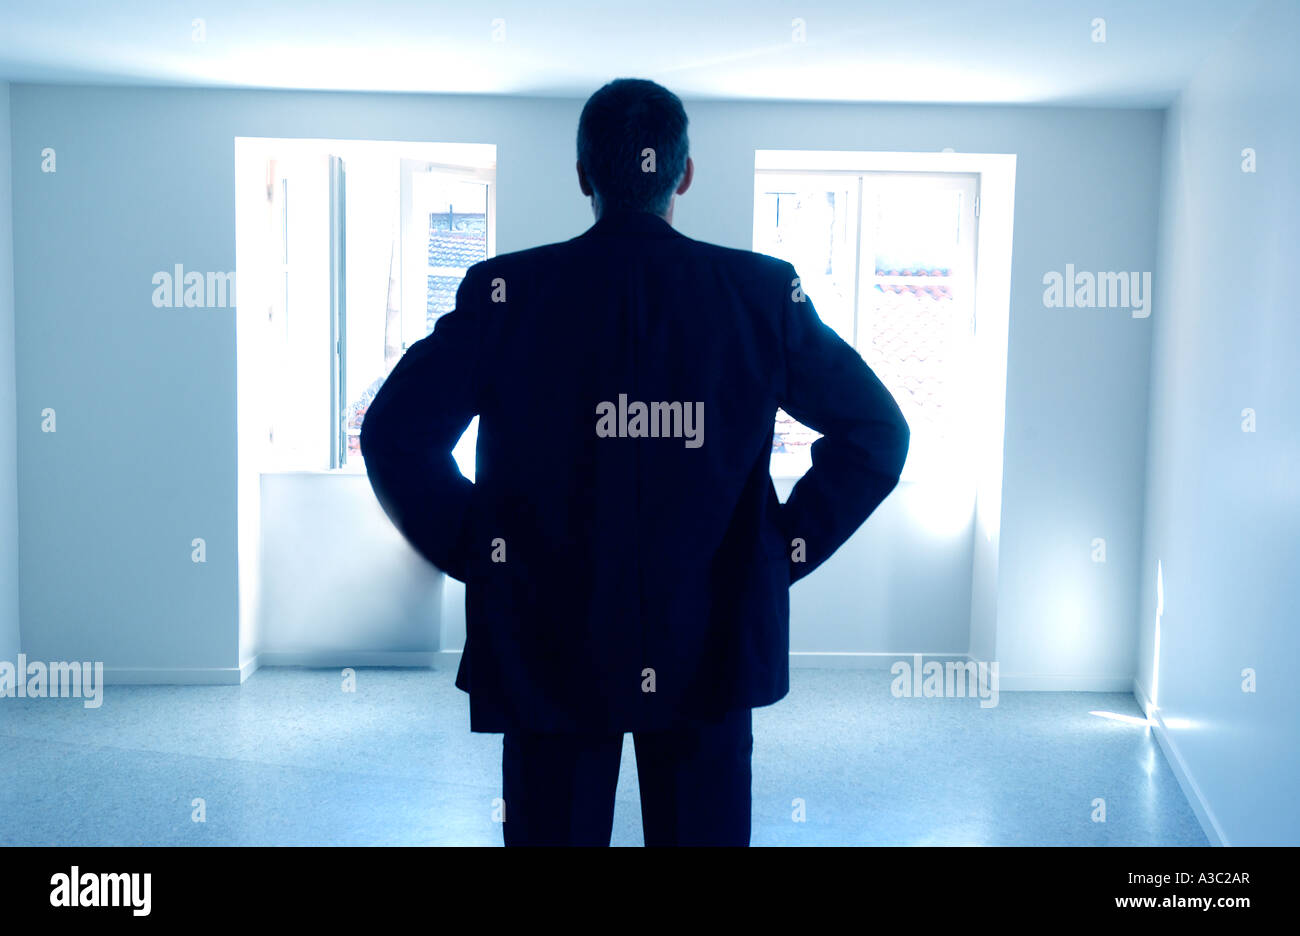 Man standing in an empty room / apartment / house - rear view silhouette - property / owner/ selling / rental / - Stock Image